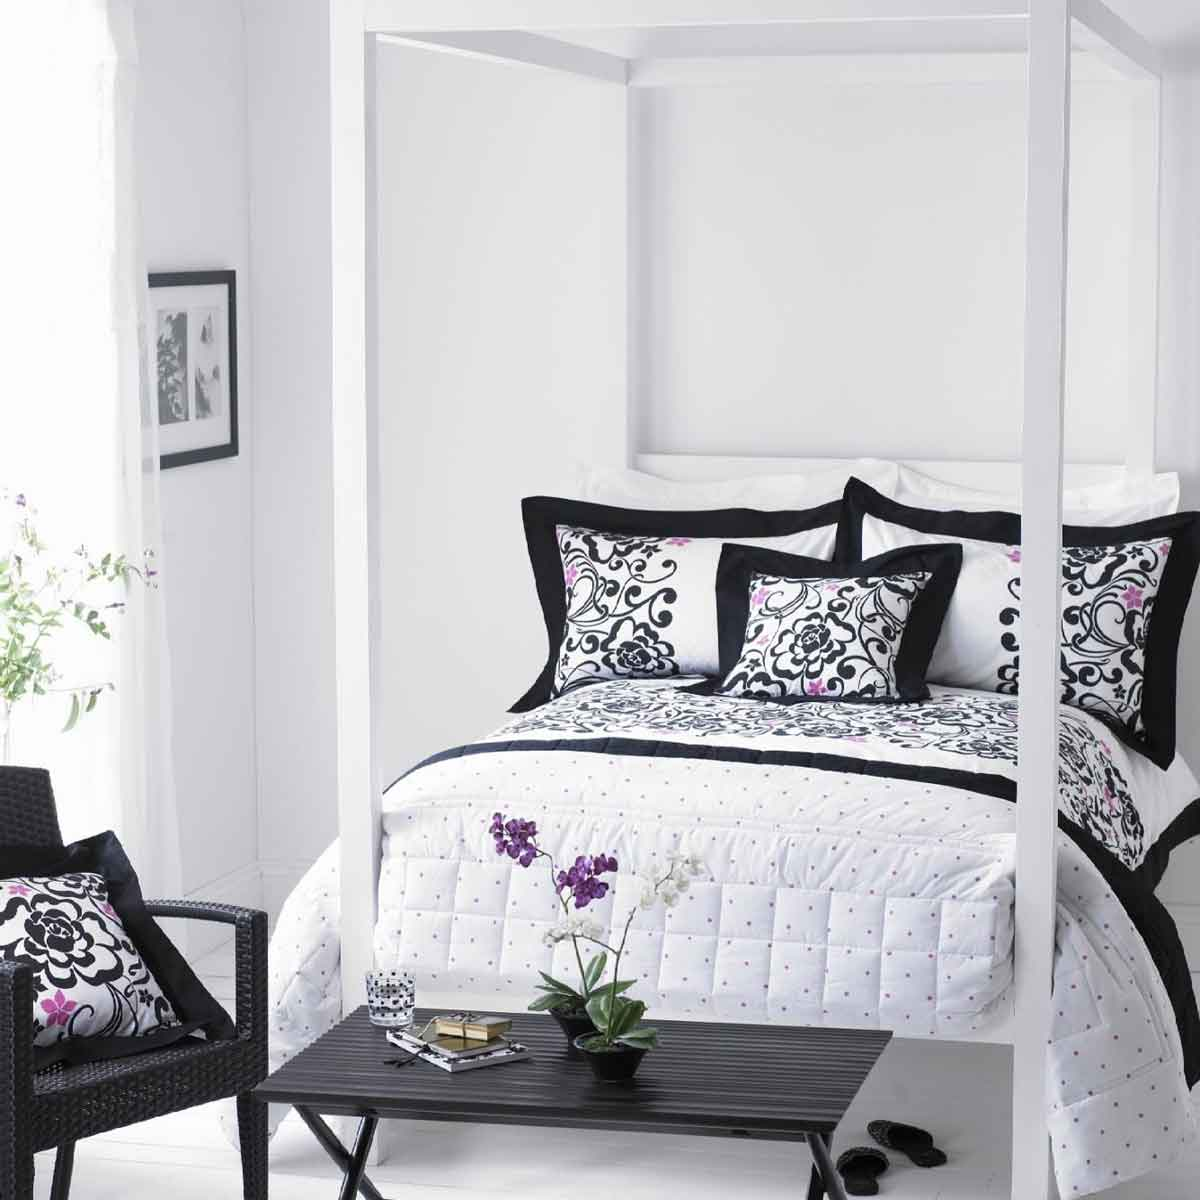 Black and white bedrooms designs home design inside for Bedroom items